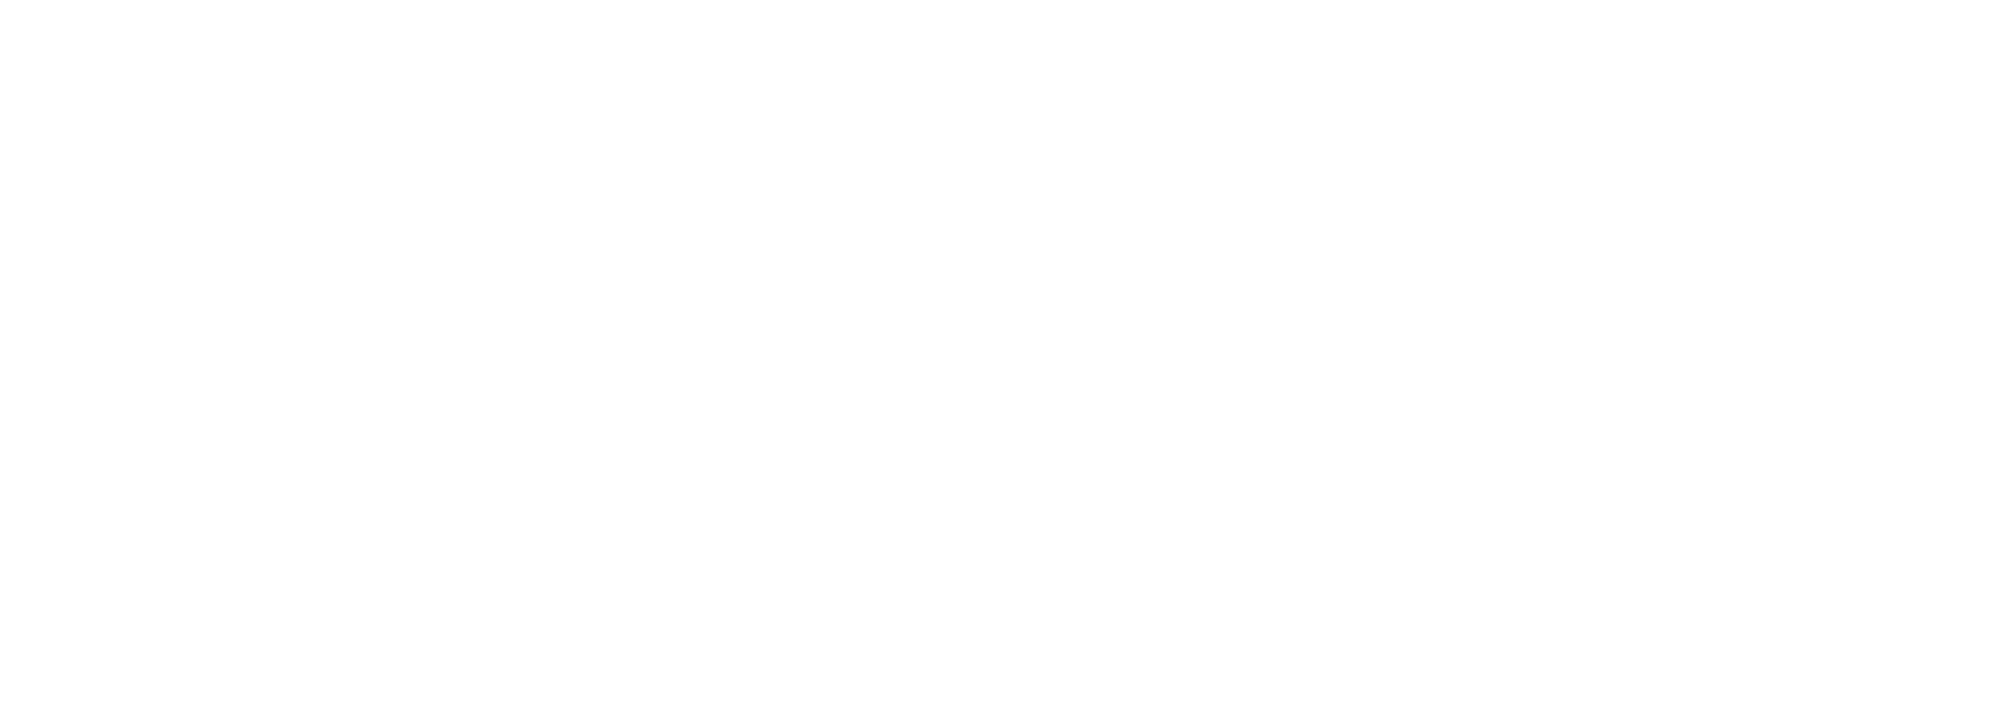 CONTACT-logo-white.png